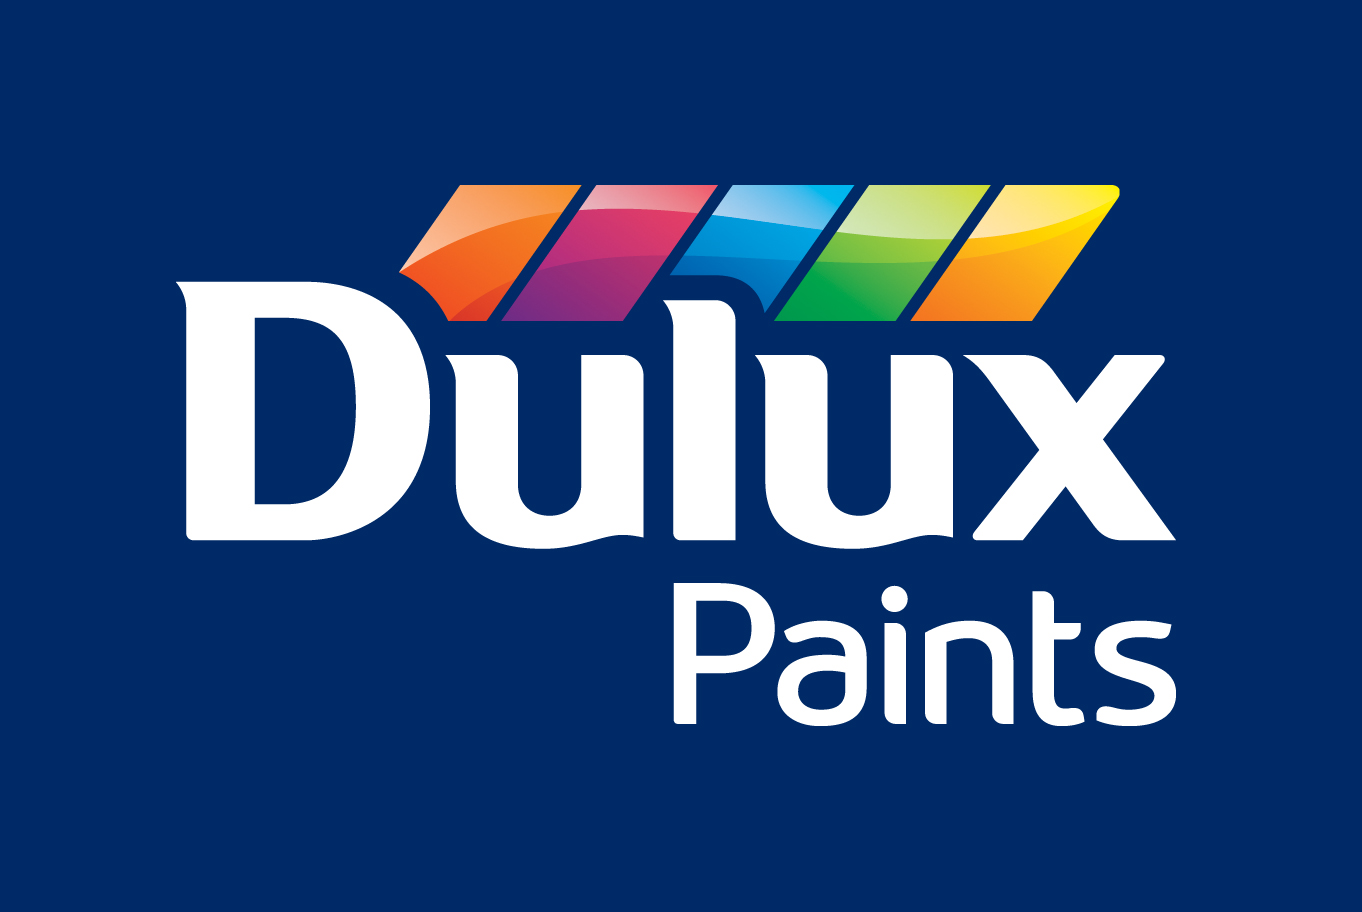 Save up to 25% off Dulux Paints manufactured paints and stains